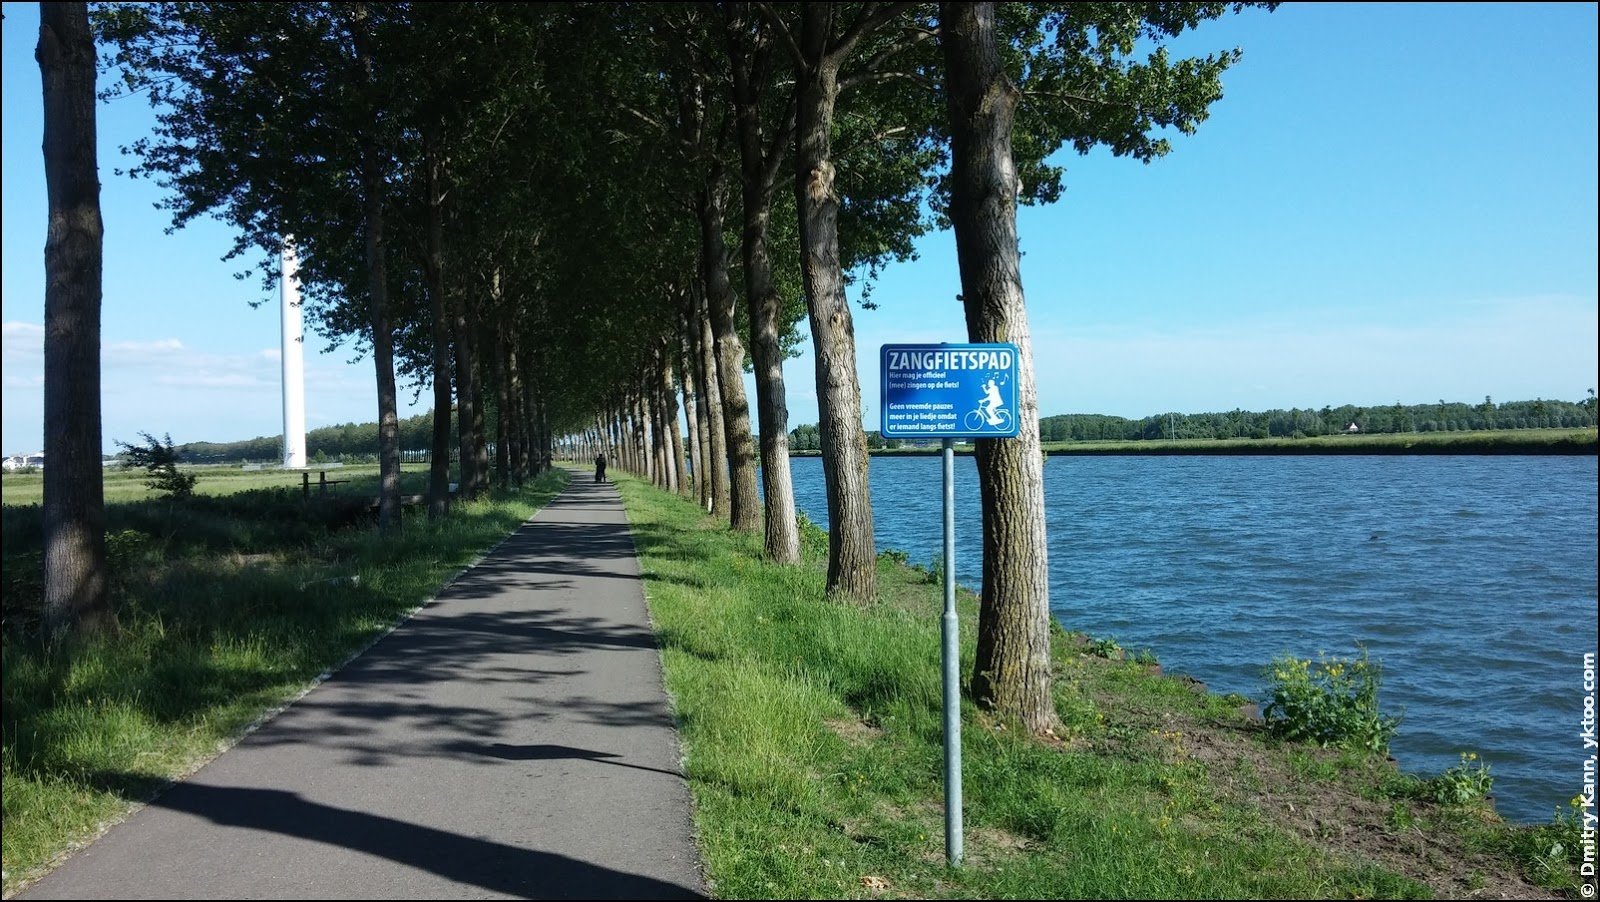 The Amsterdam-Rijnkanaal and the Zangfietspad in June.